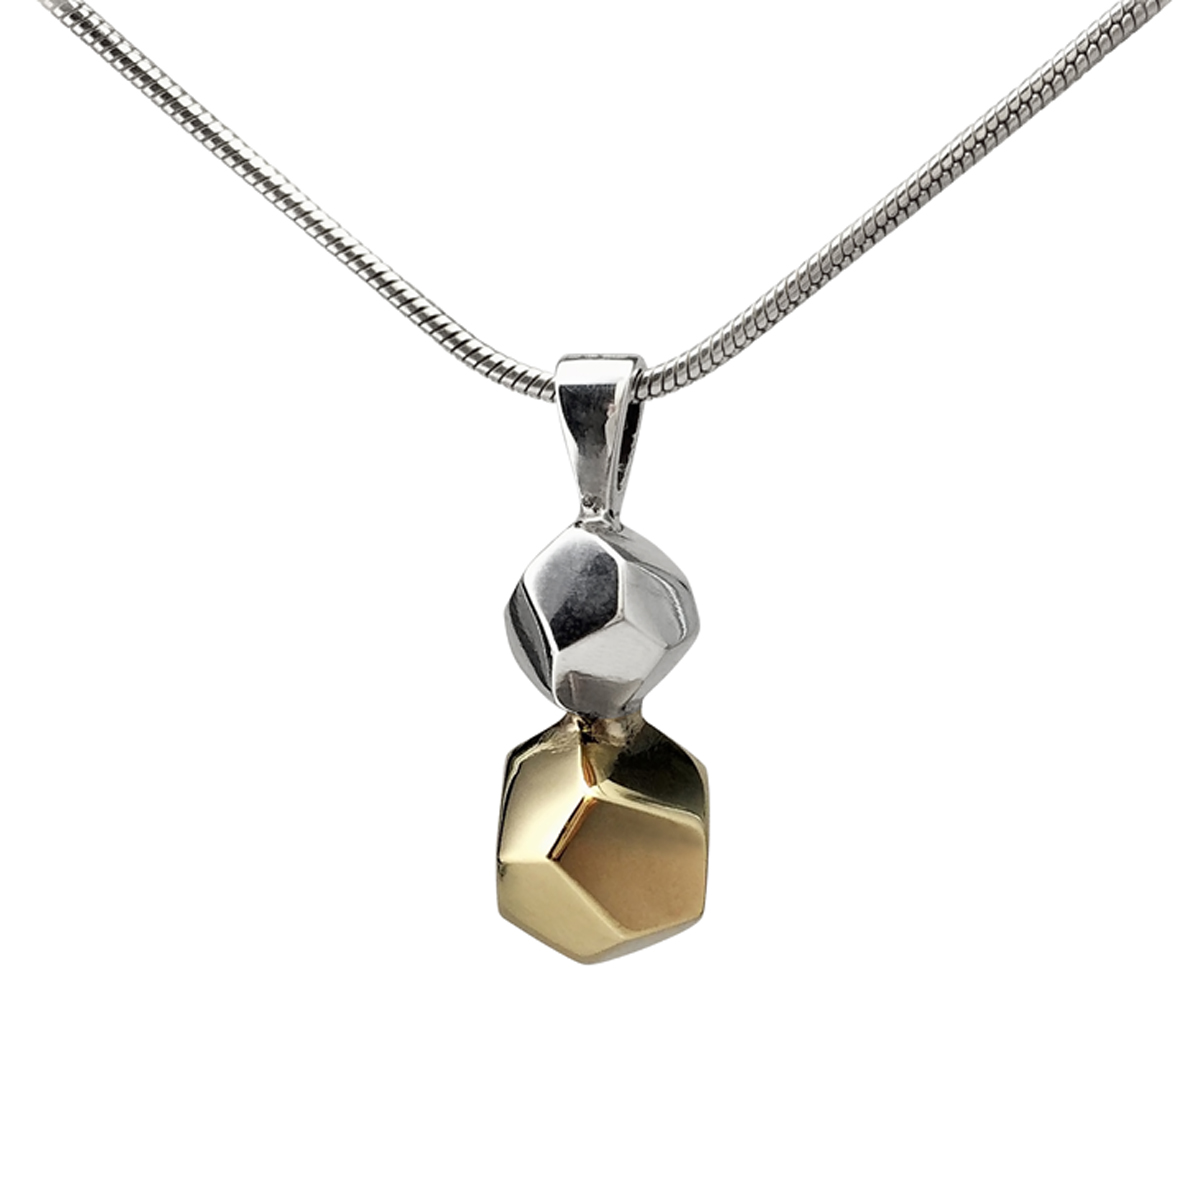 Decca silver and 9ct gold pendant